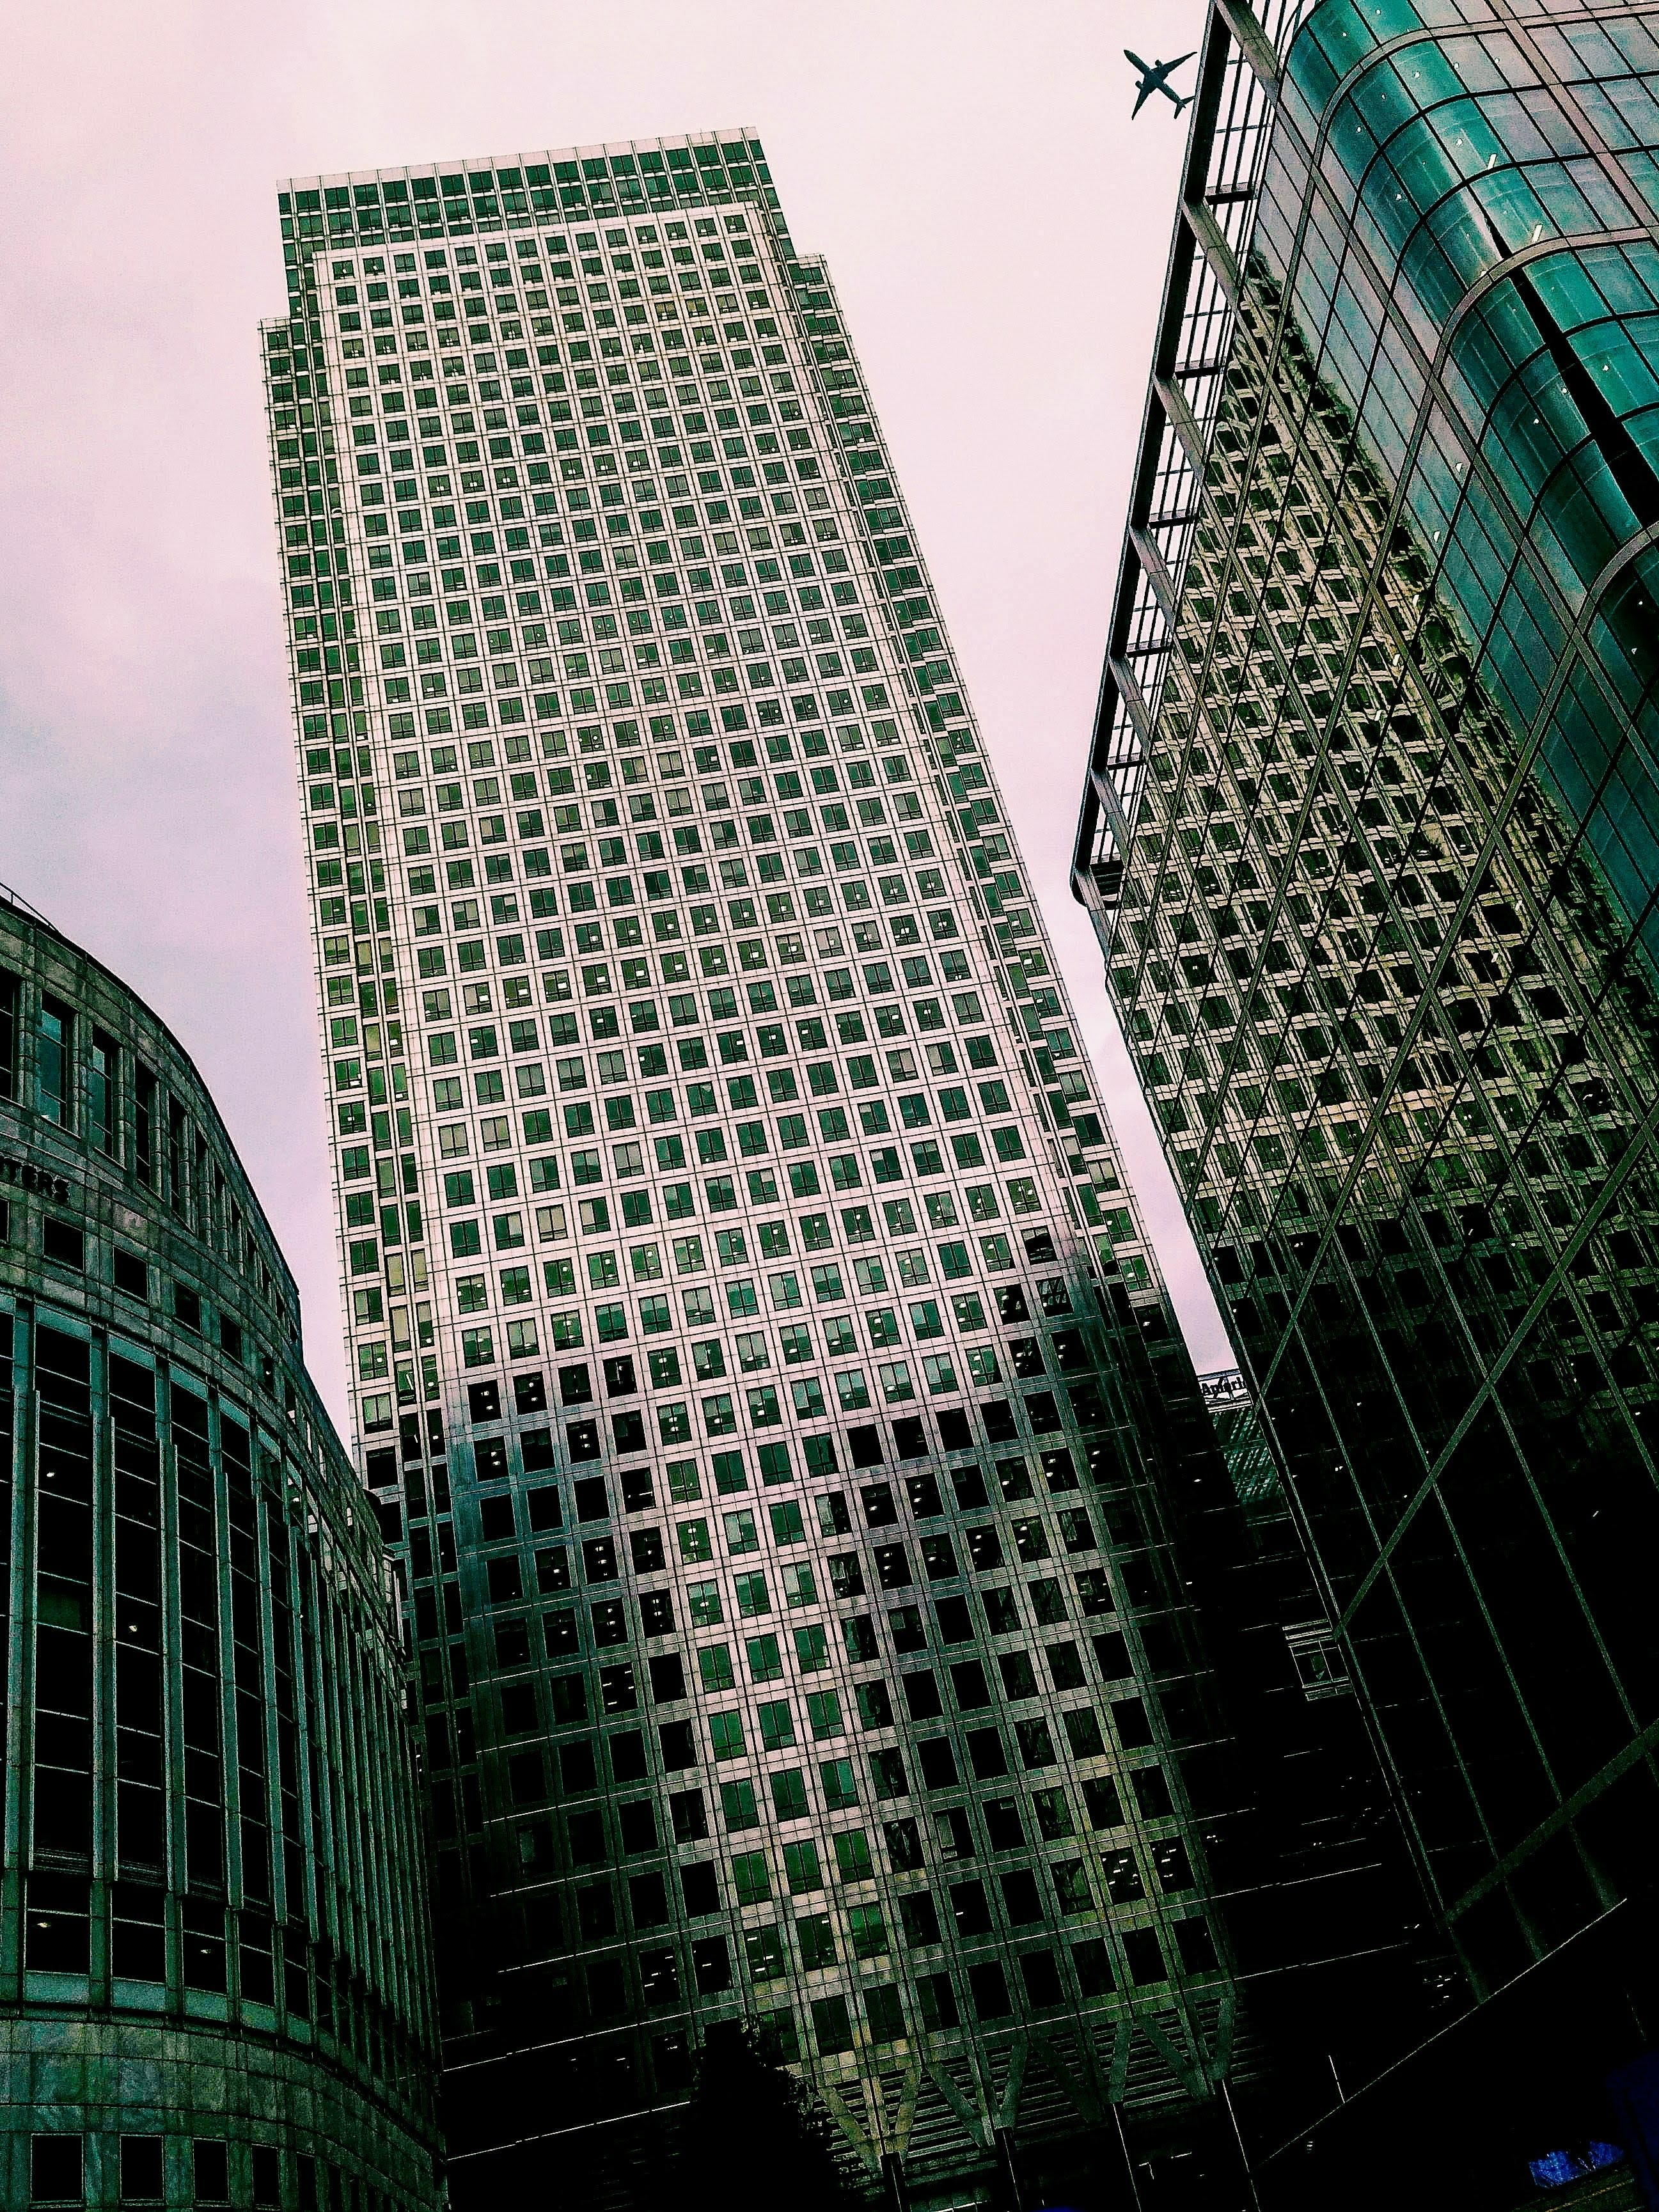 Low Angle View of Green High-rise Building